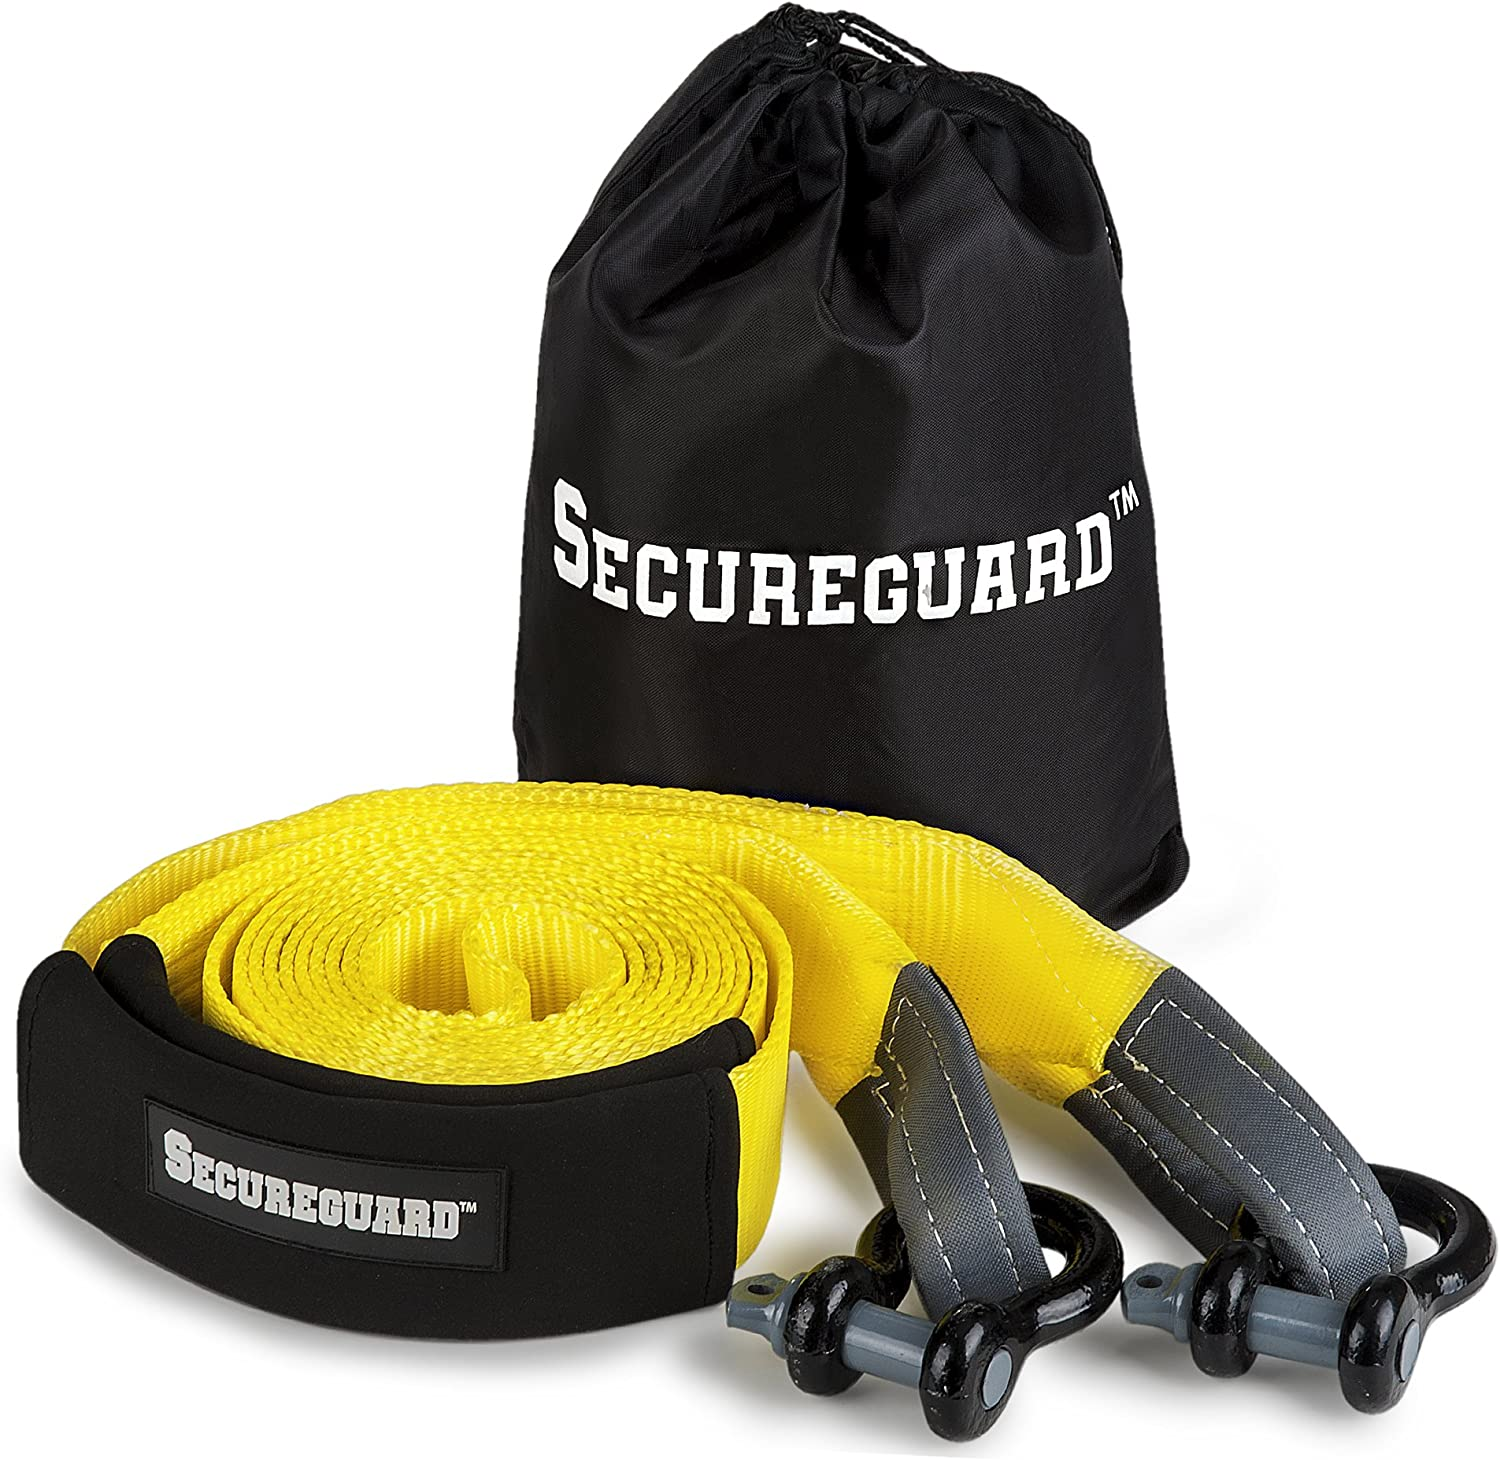 Secureguard Recovery Tow Strap - 20 Feet Long | Extra Heavy Duty